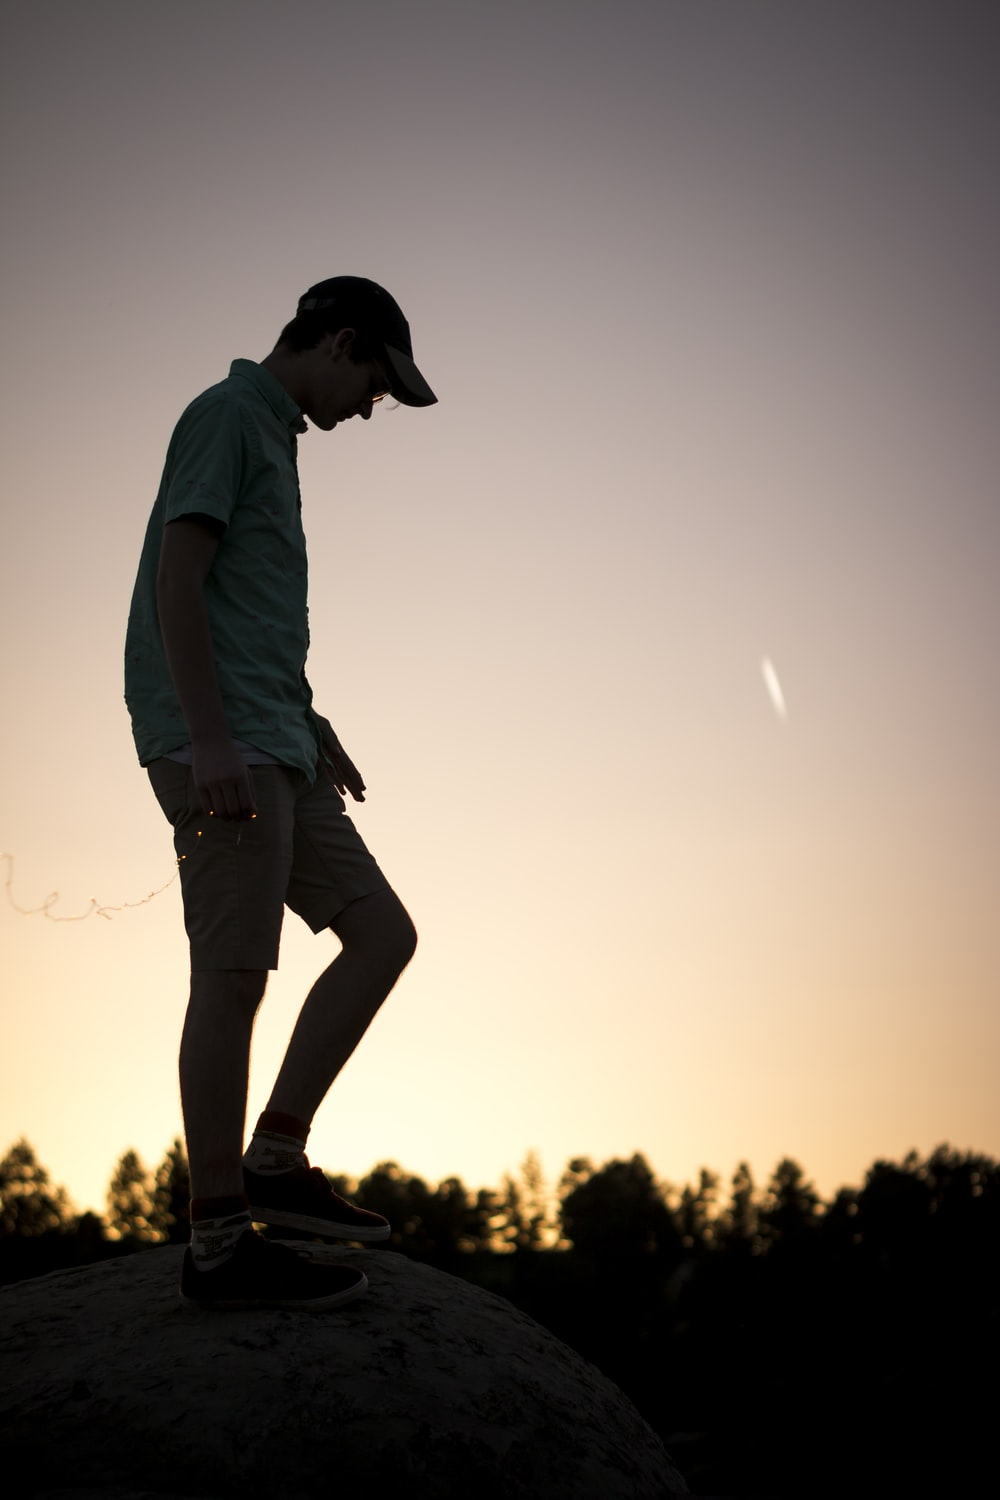 man standing on rock under clear sky photo – Free Person Image on Unsplash